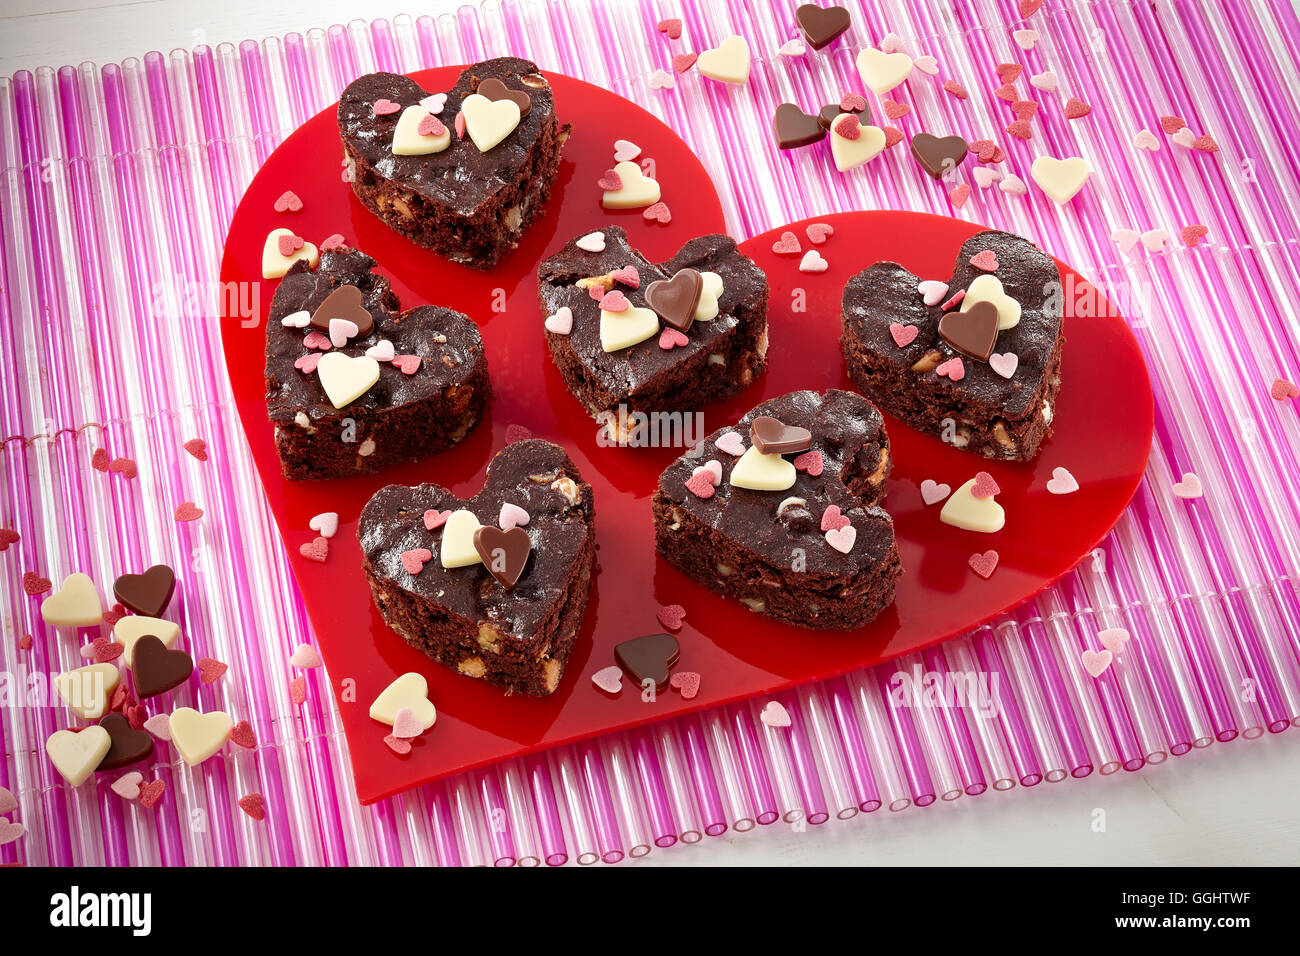 Aphrodite brownies - Stock Image